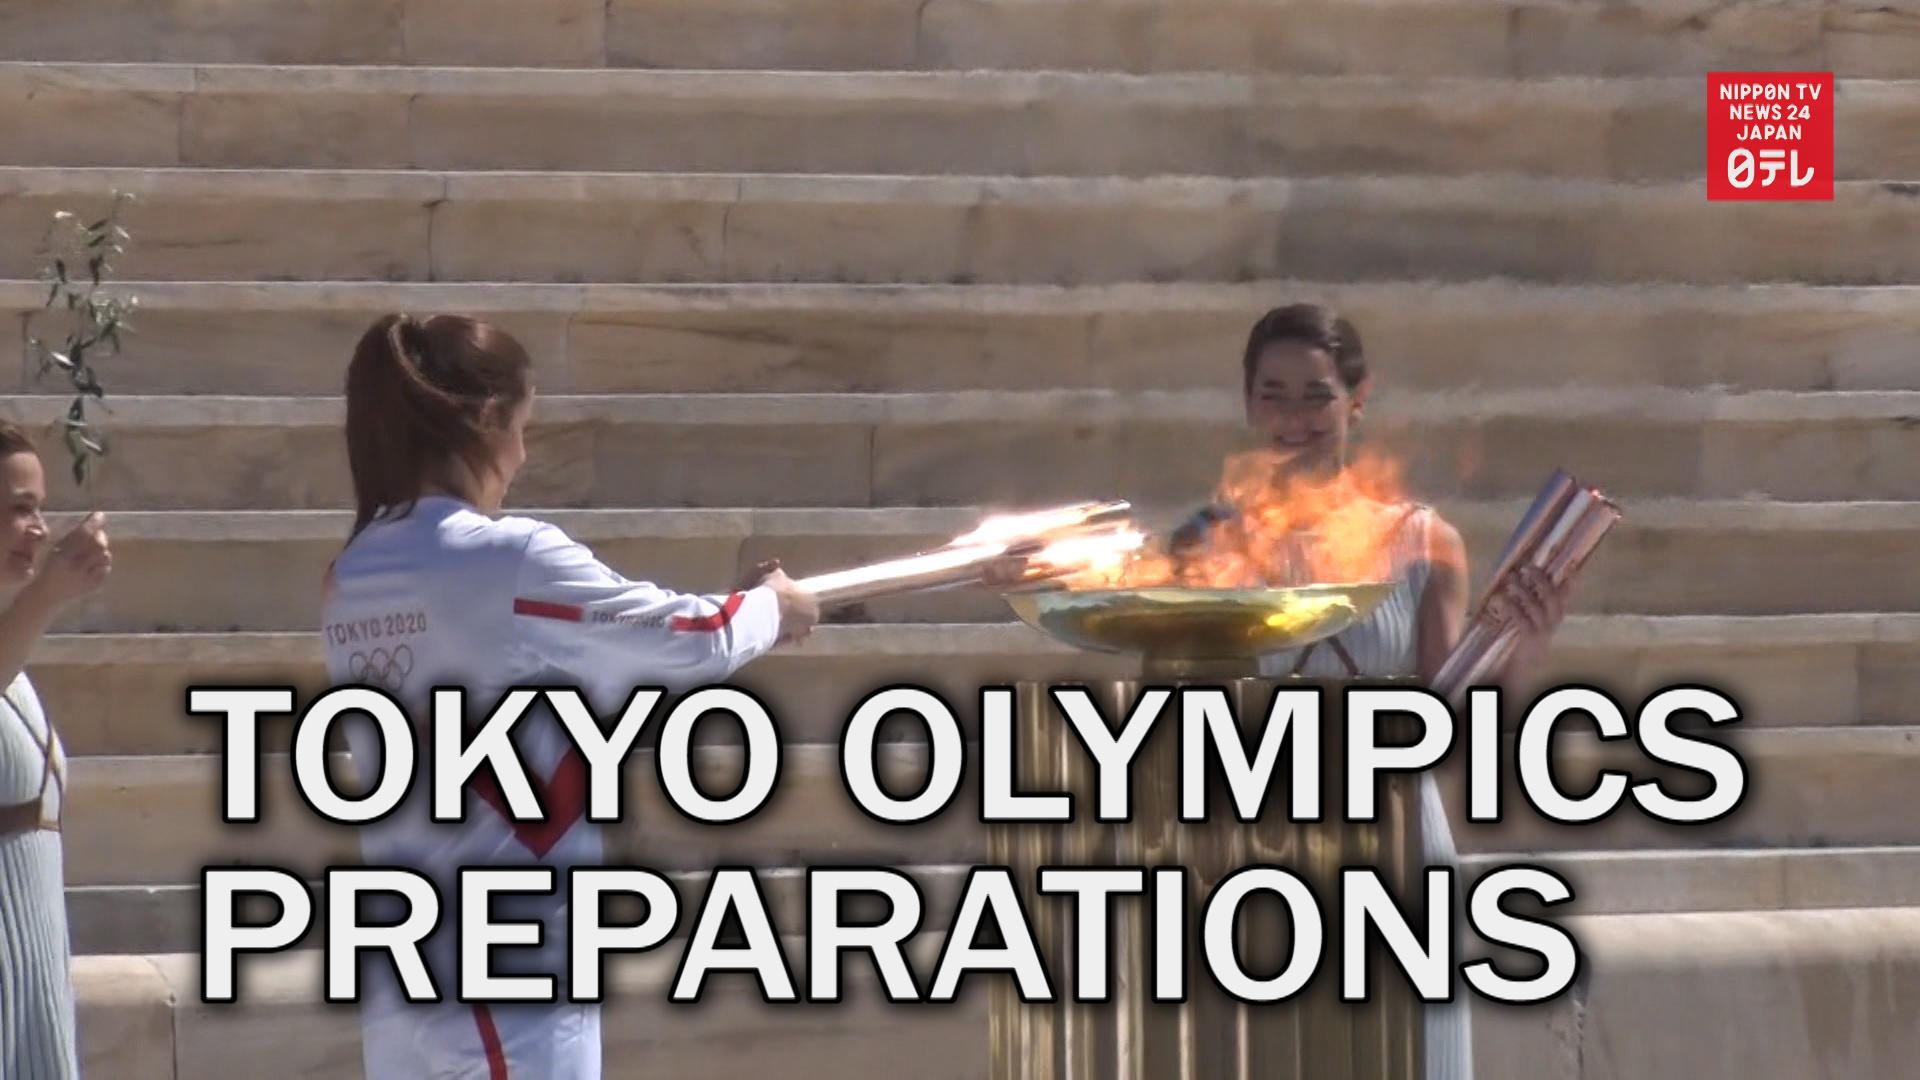 Tokyo Olympics security preparations